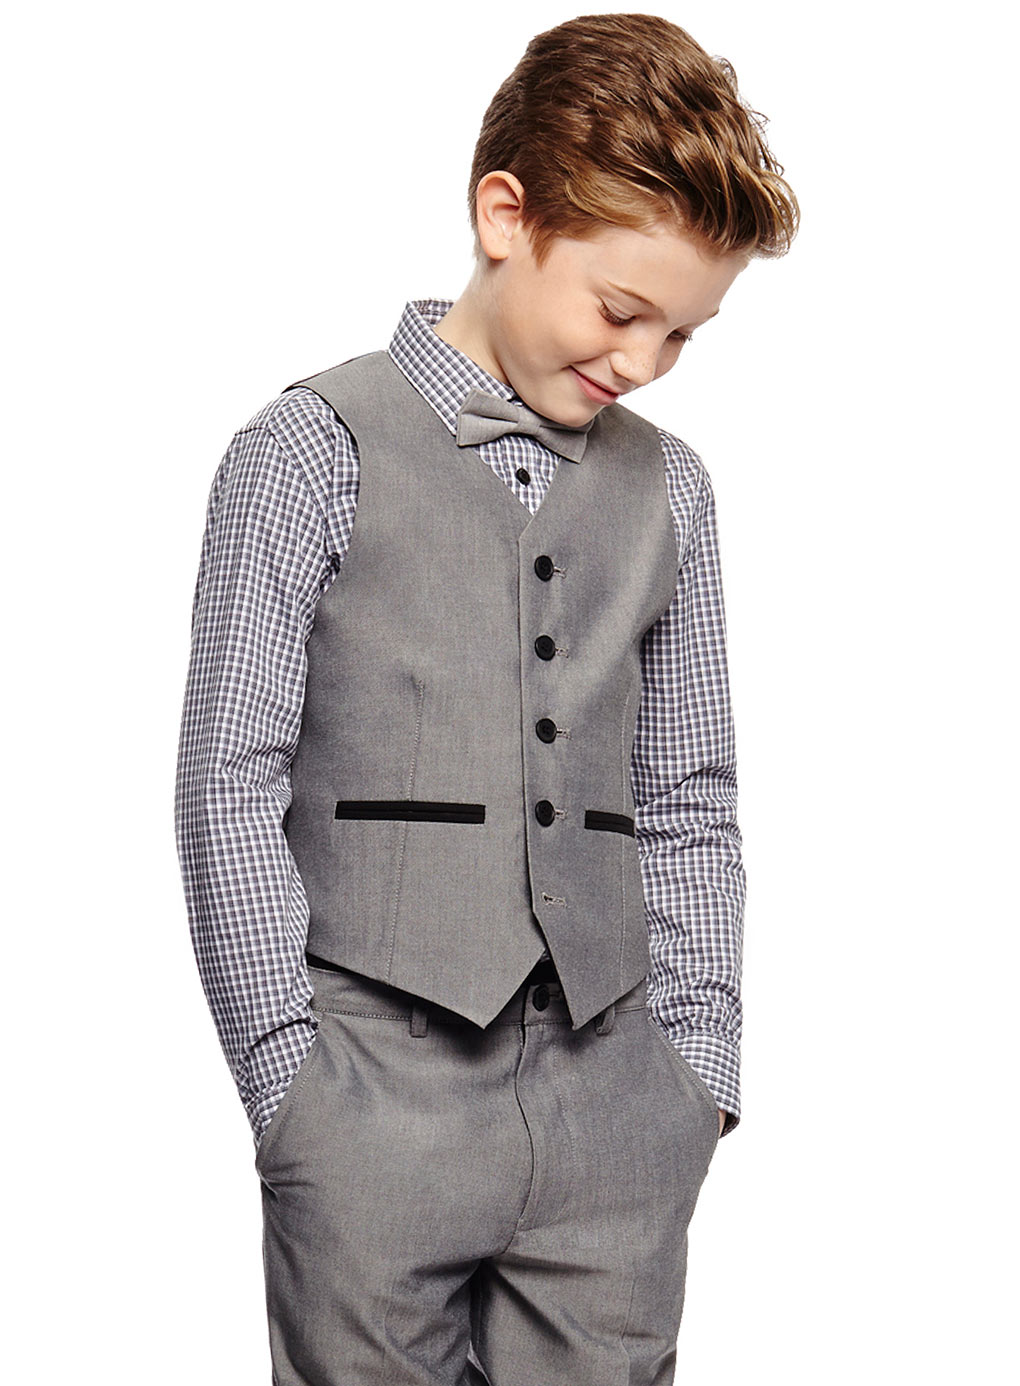 boys suit suit for boys - google zoeken hrvxsva